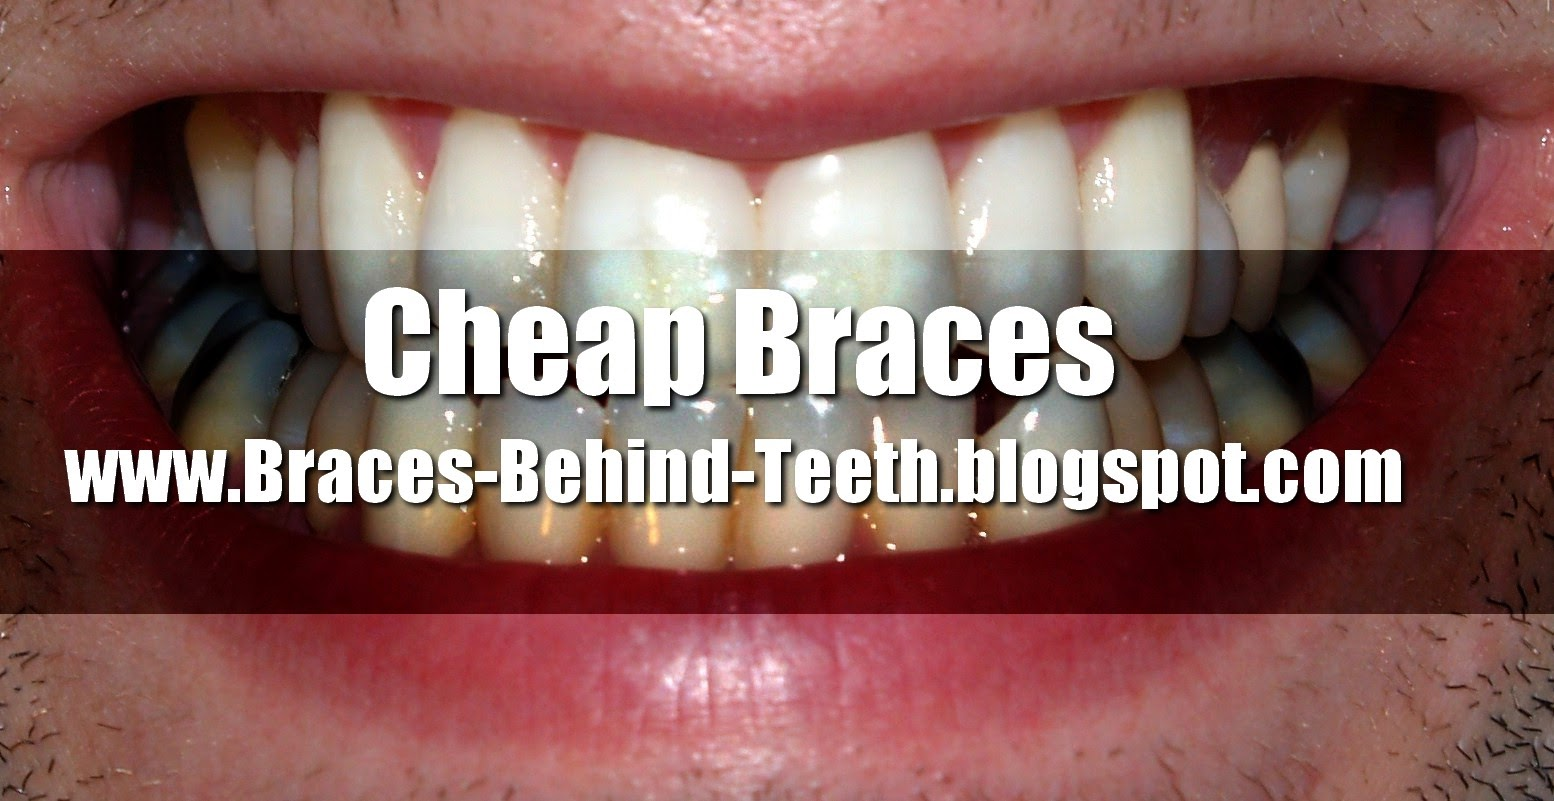 Cheap Braces